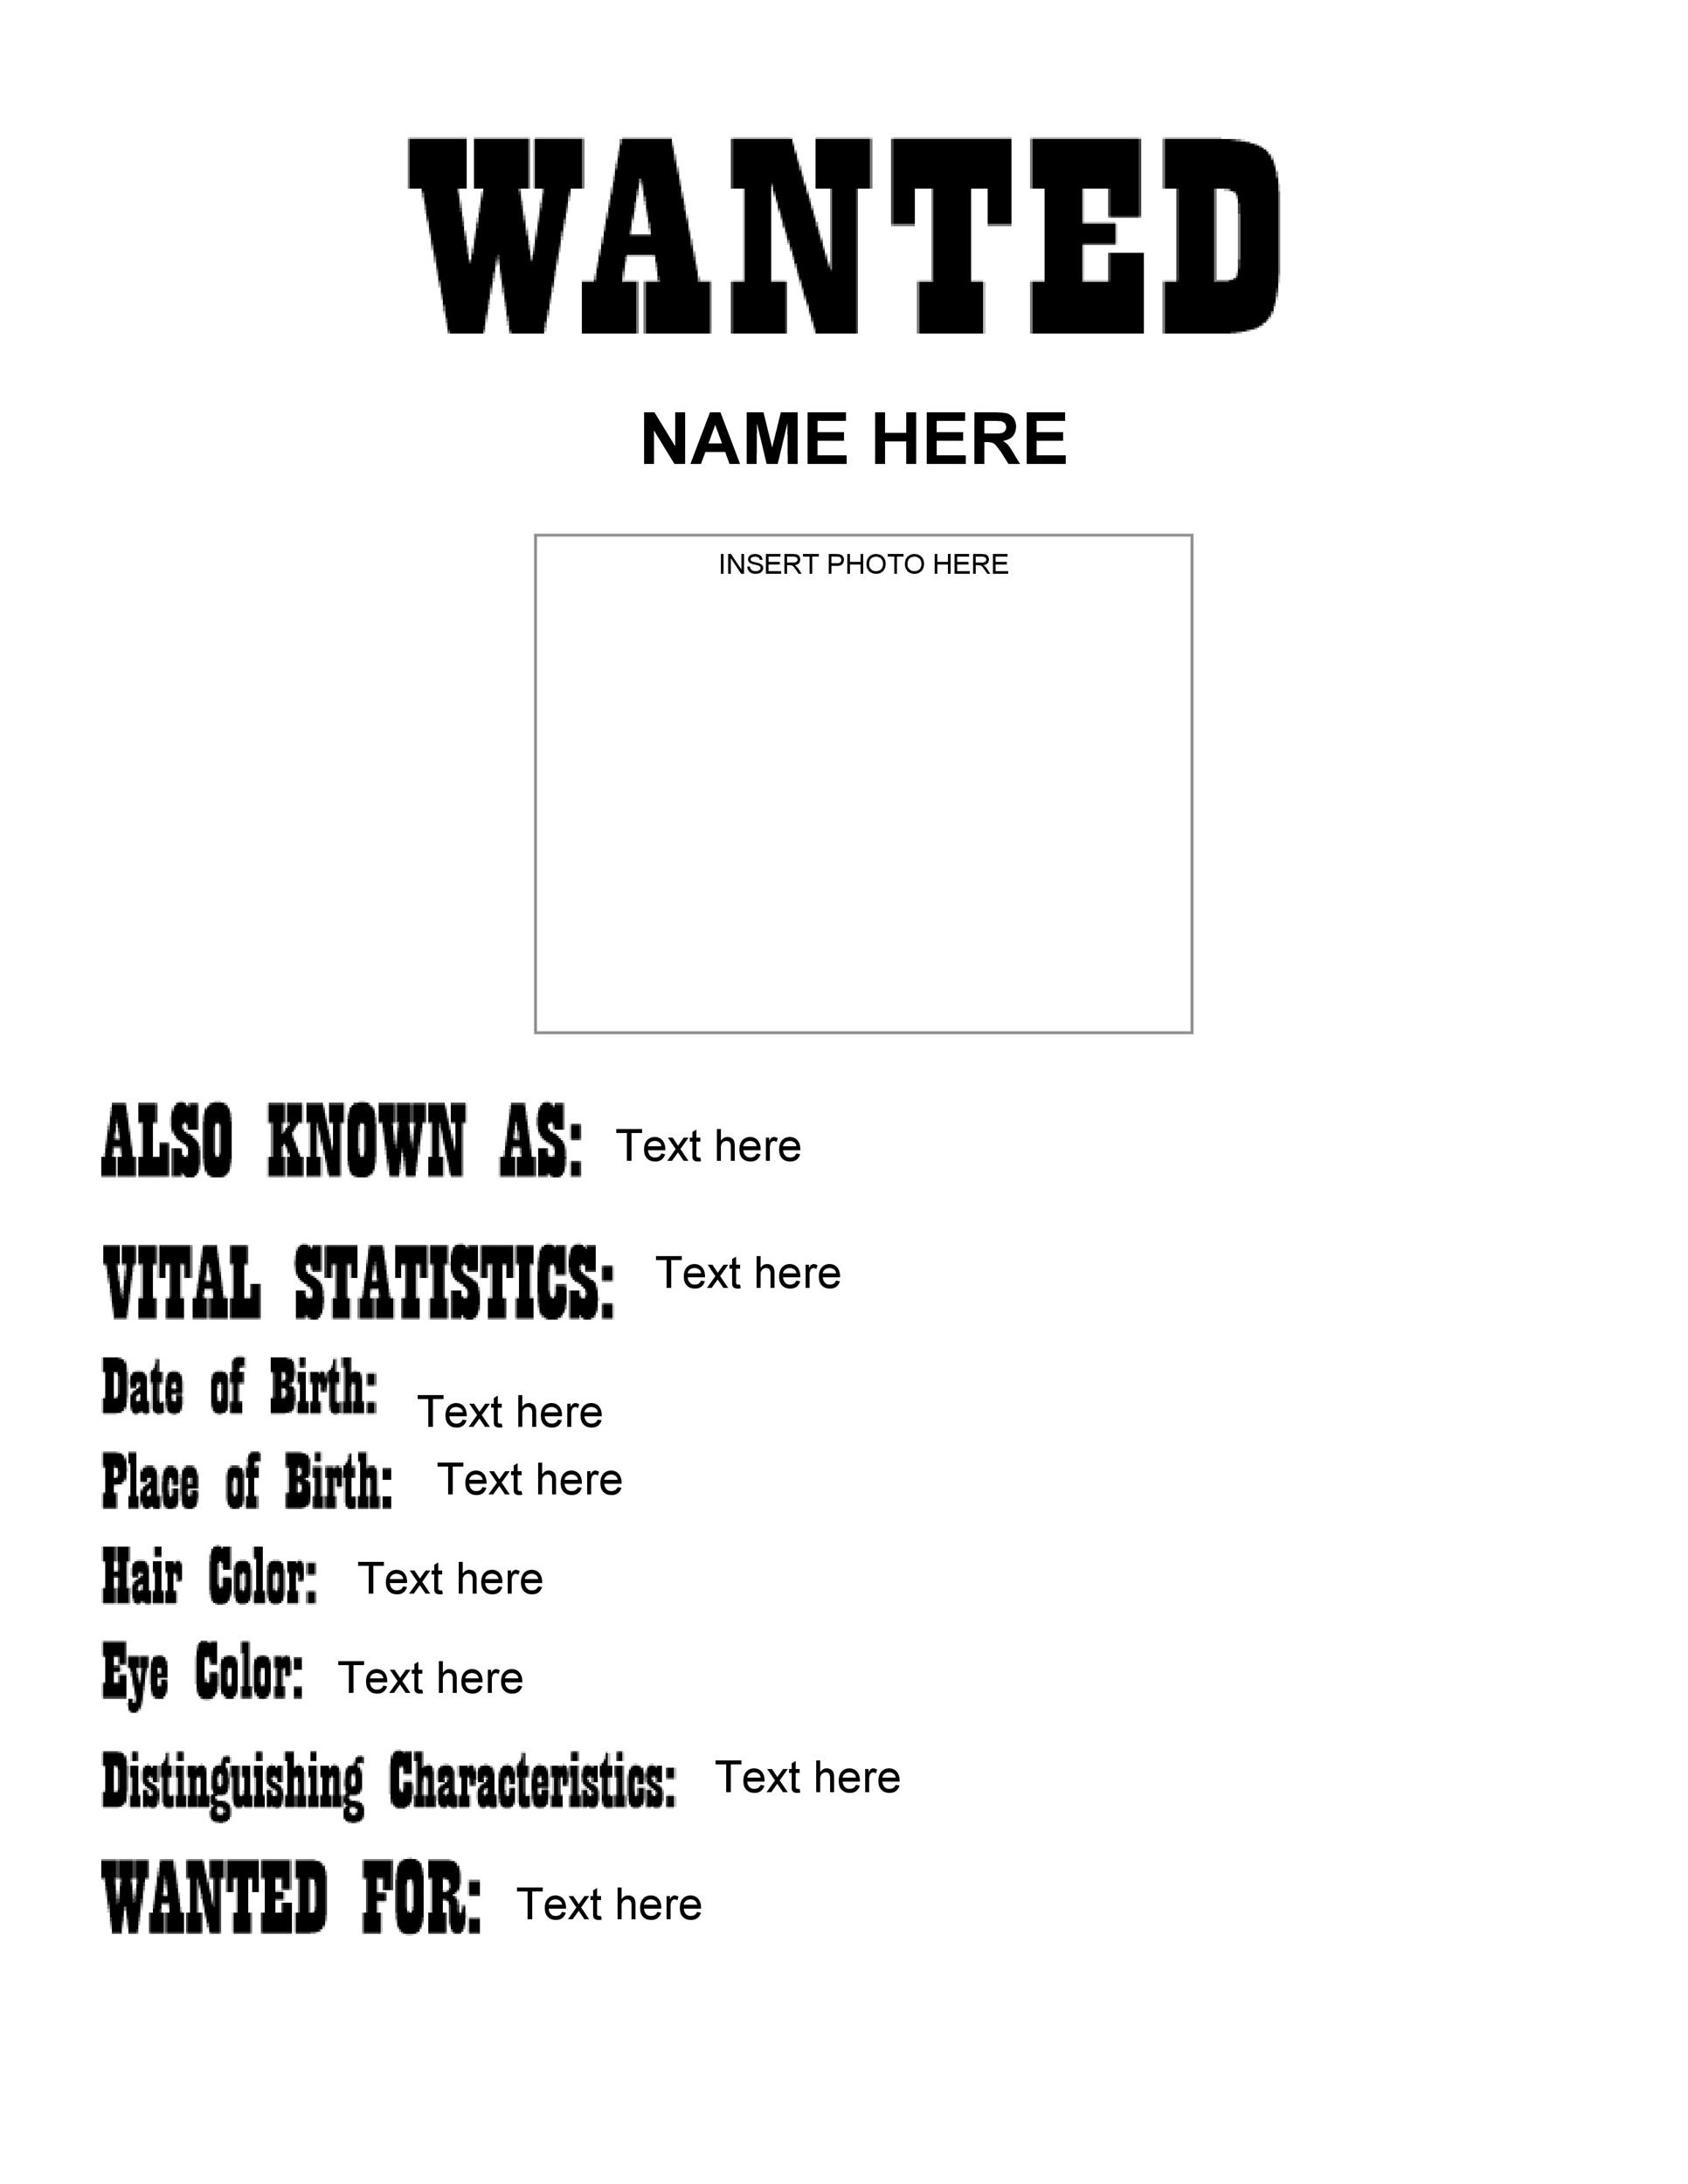 Printable Old West Most Wanted Poster 01  Printable Wanted Poster Template